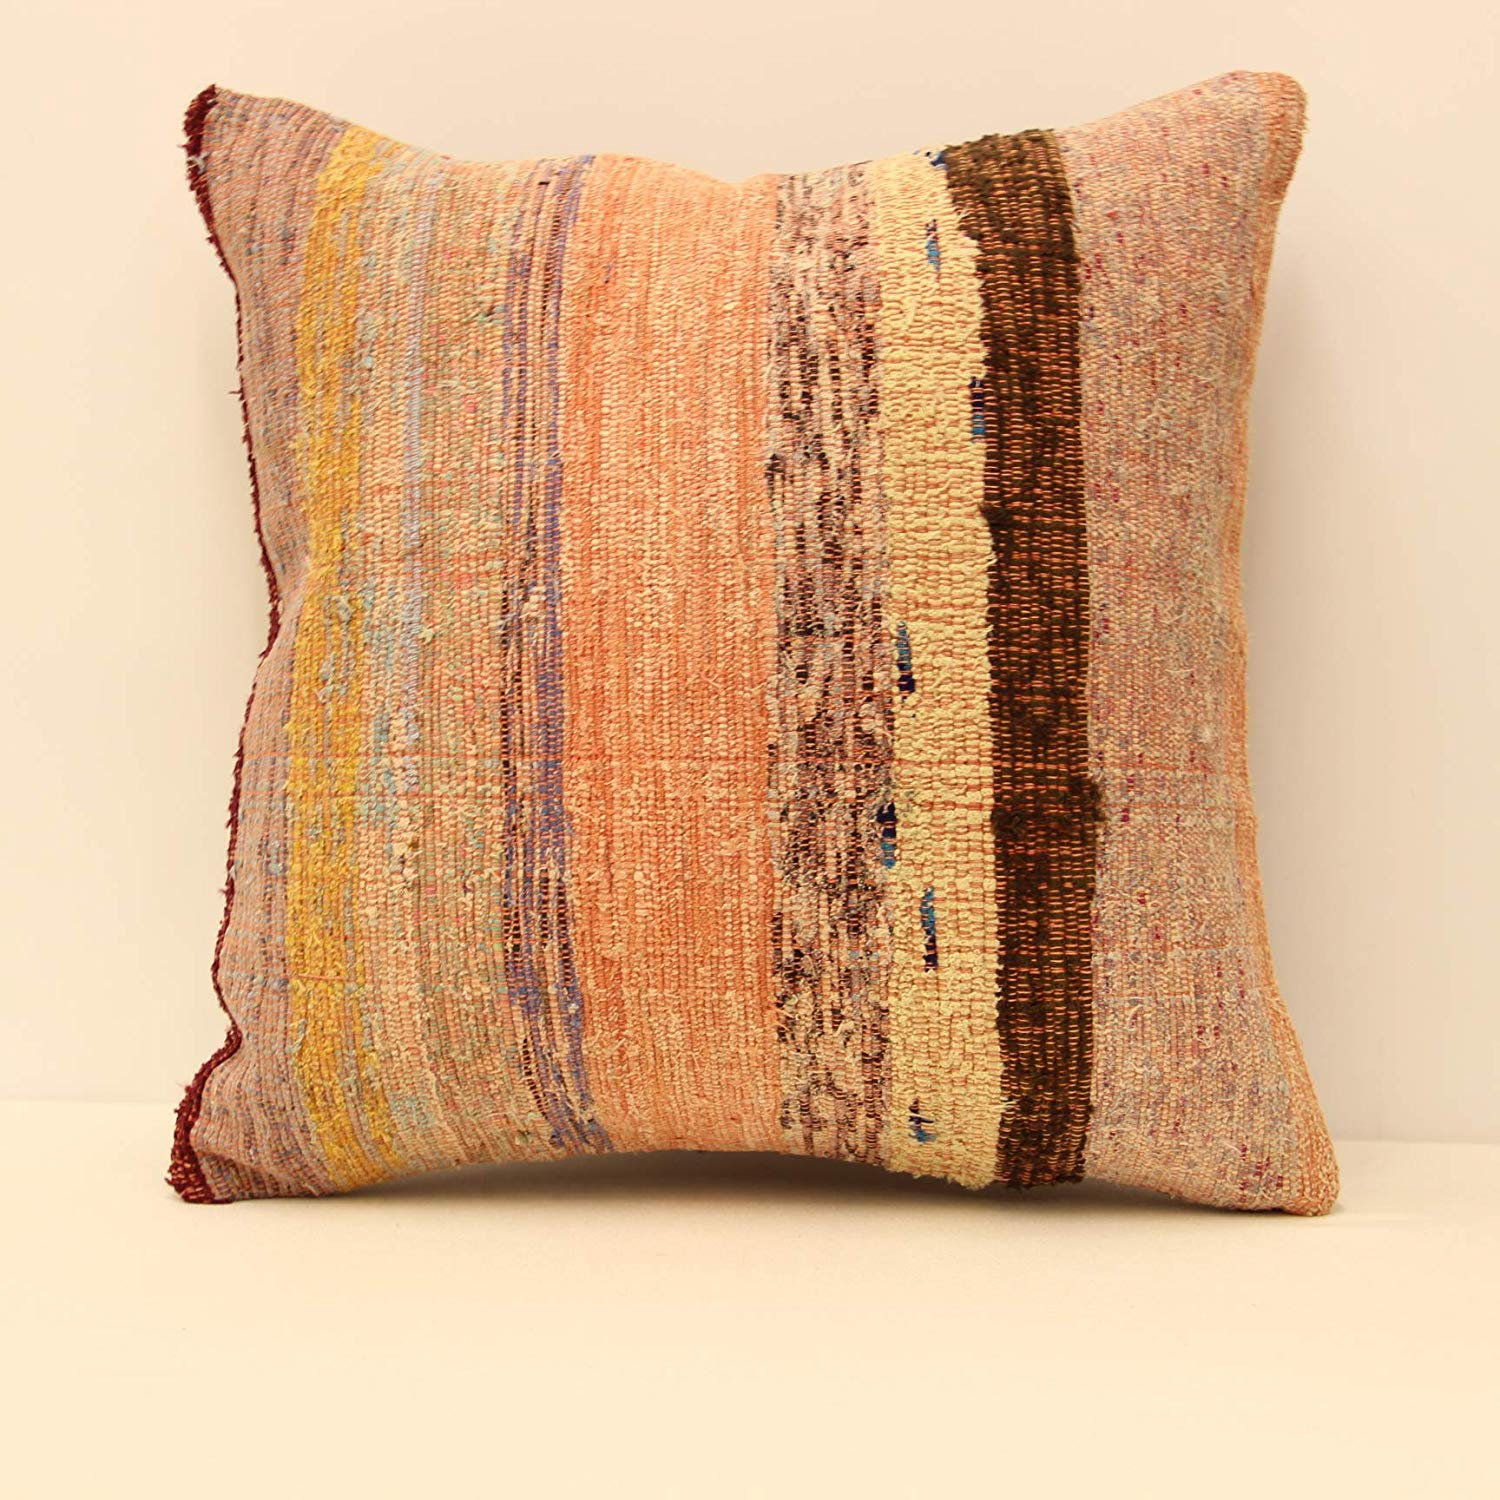 Groovy Cheap Couch Throw Pillows Find Couch Throw Pillows Deals On Pdpeps Interior Chair Design Pdpepsorg